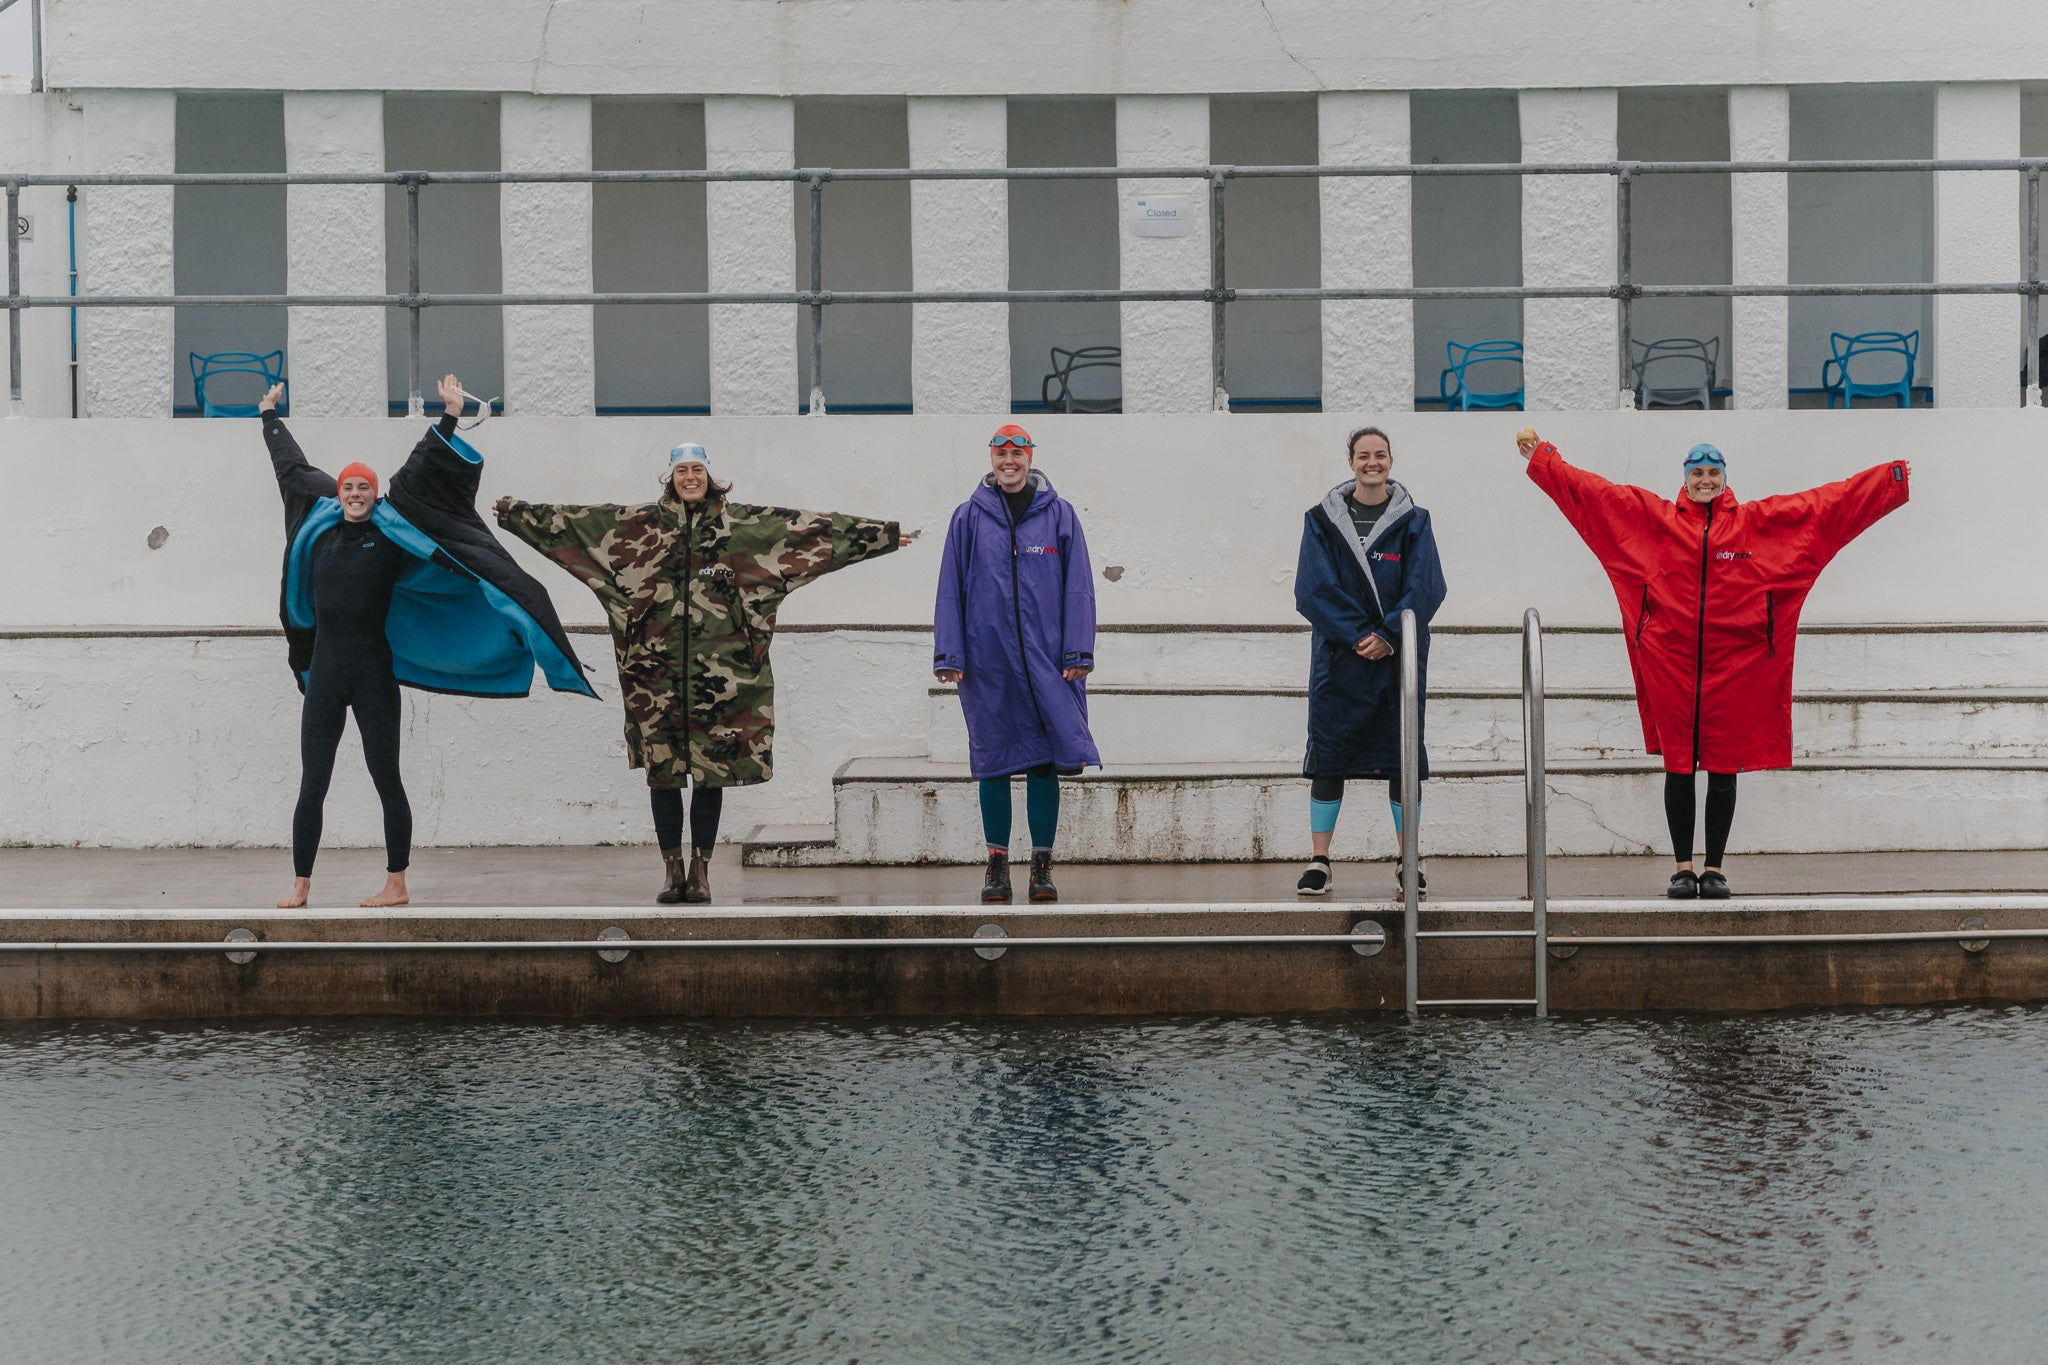 Keri-annne Payne, Lucy Campbell, Sophie Hellyer, Grace Kingswell and Anna Blackwell standing by the pool in their dryrobes